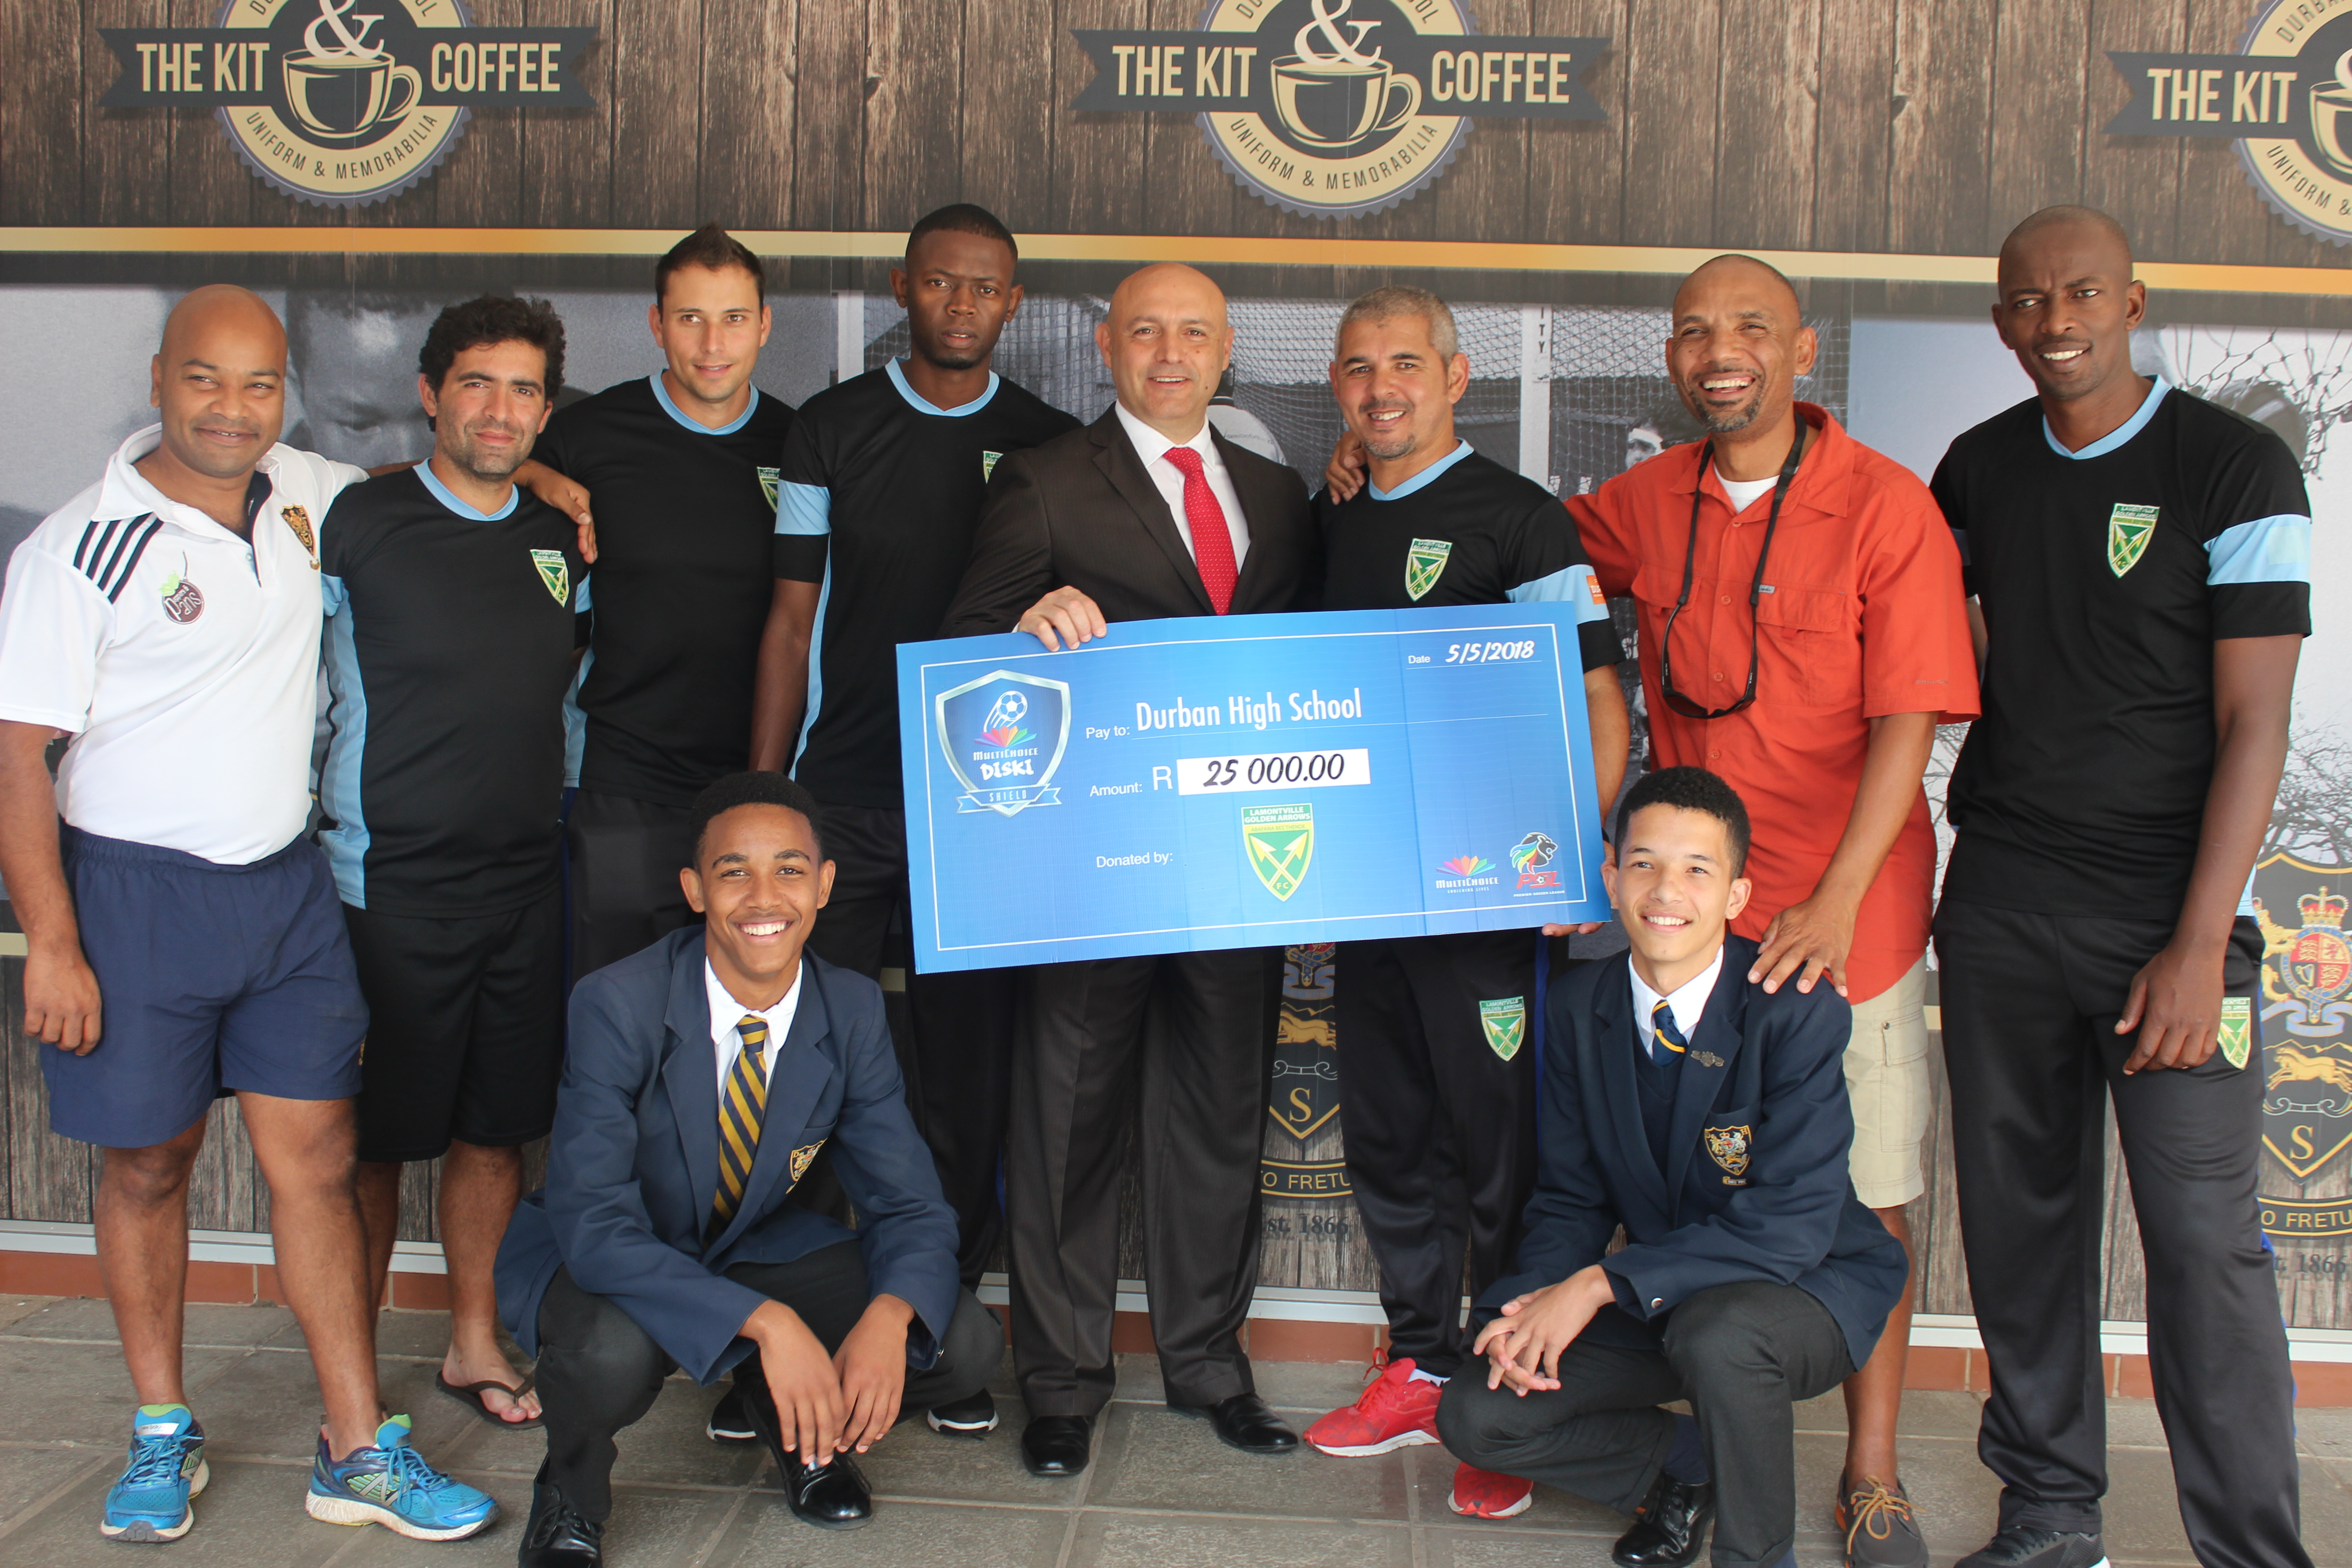 Head of Sport Mr Nathan Pillay, Goal Keeper Coach Ricardo Goncalves, Physical Trainer Pedro Picarro, Diski Team Coach Vusumuzi Vilakazi, Head Master Mr AD Pinheiro, Head Coach of the Golden Arrows Clinton Larsen, GB Member Noel Stapelfeldt, Diski Team Coach Papi Zothwane and DHS Boys Jazimin Stapelfeldt and Kyle Thyssen